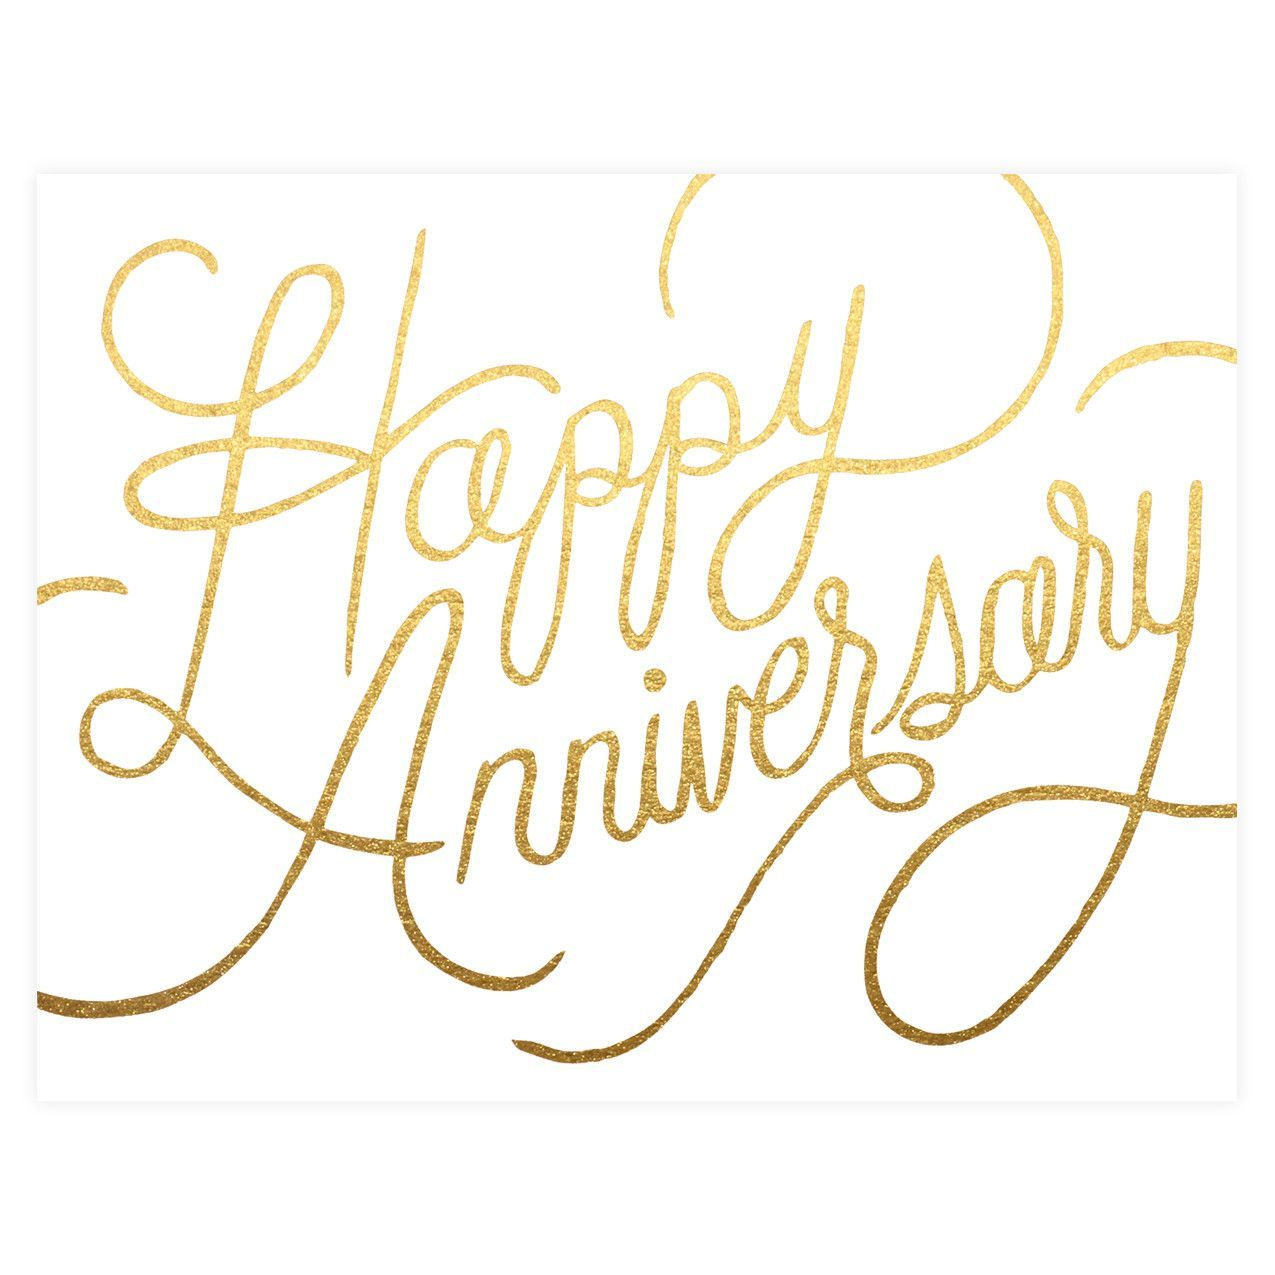 Anniversary wishes printed in metallic gold foil from